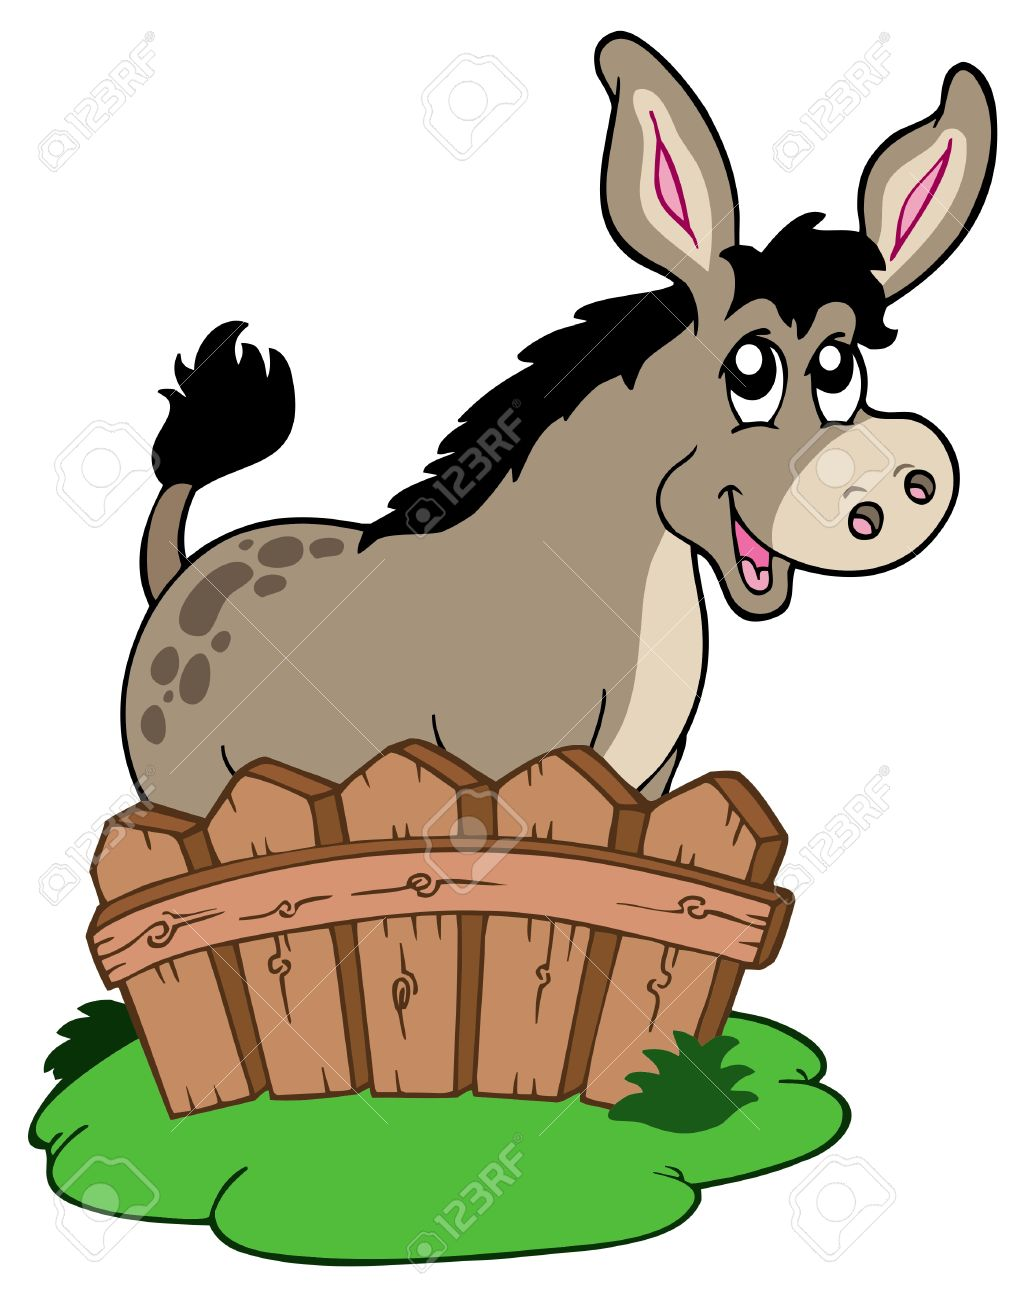 Cartoon Donkey Behind Fence - Vector Illustration. Royalty Free ...